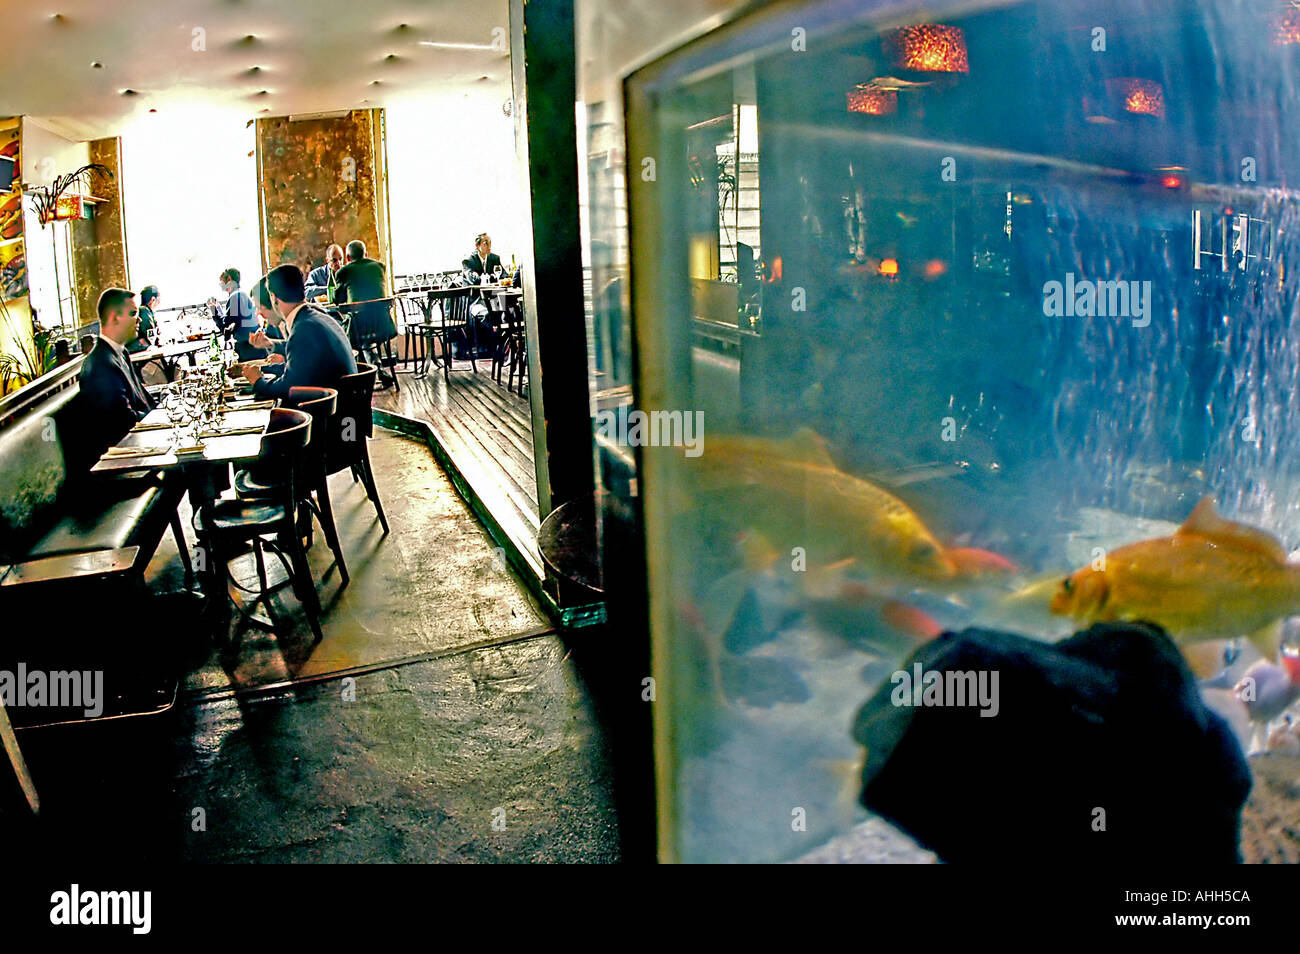 Aquarium in dining room